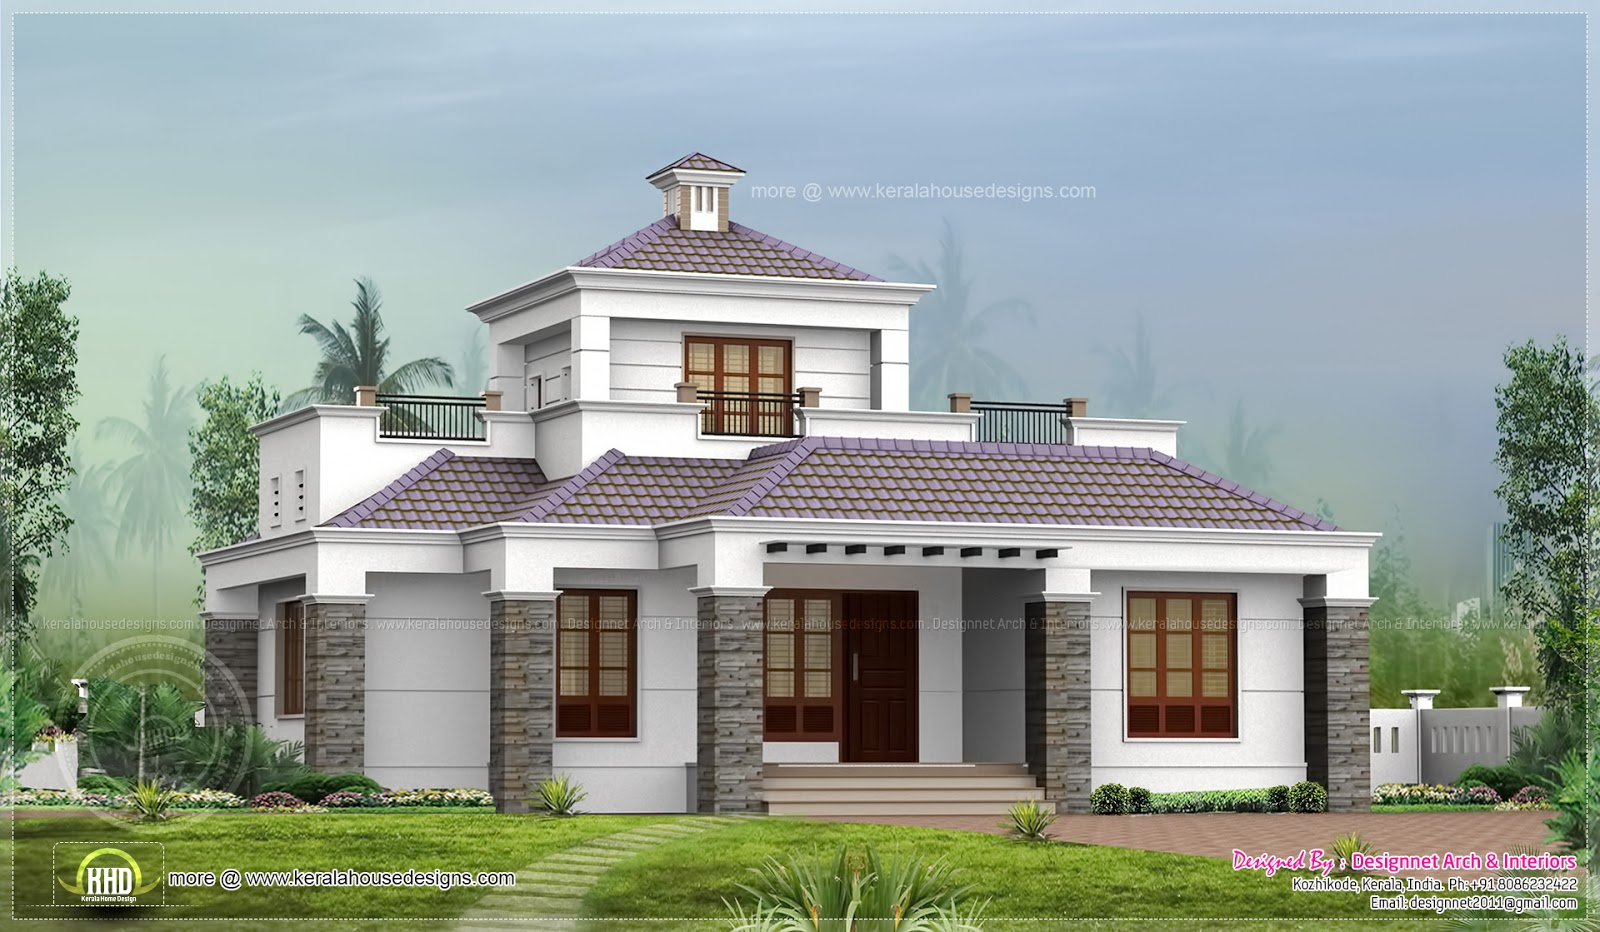 Single floor home with stair room in 1500 sq ft home for Single floor house designs tamilnadu